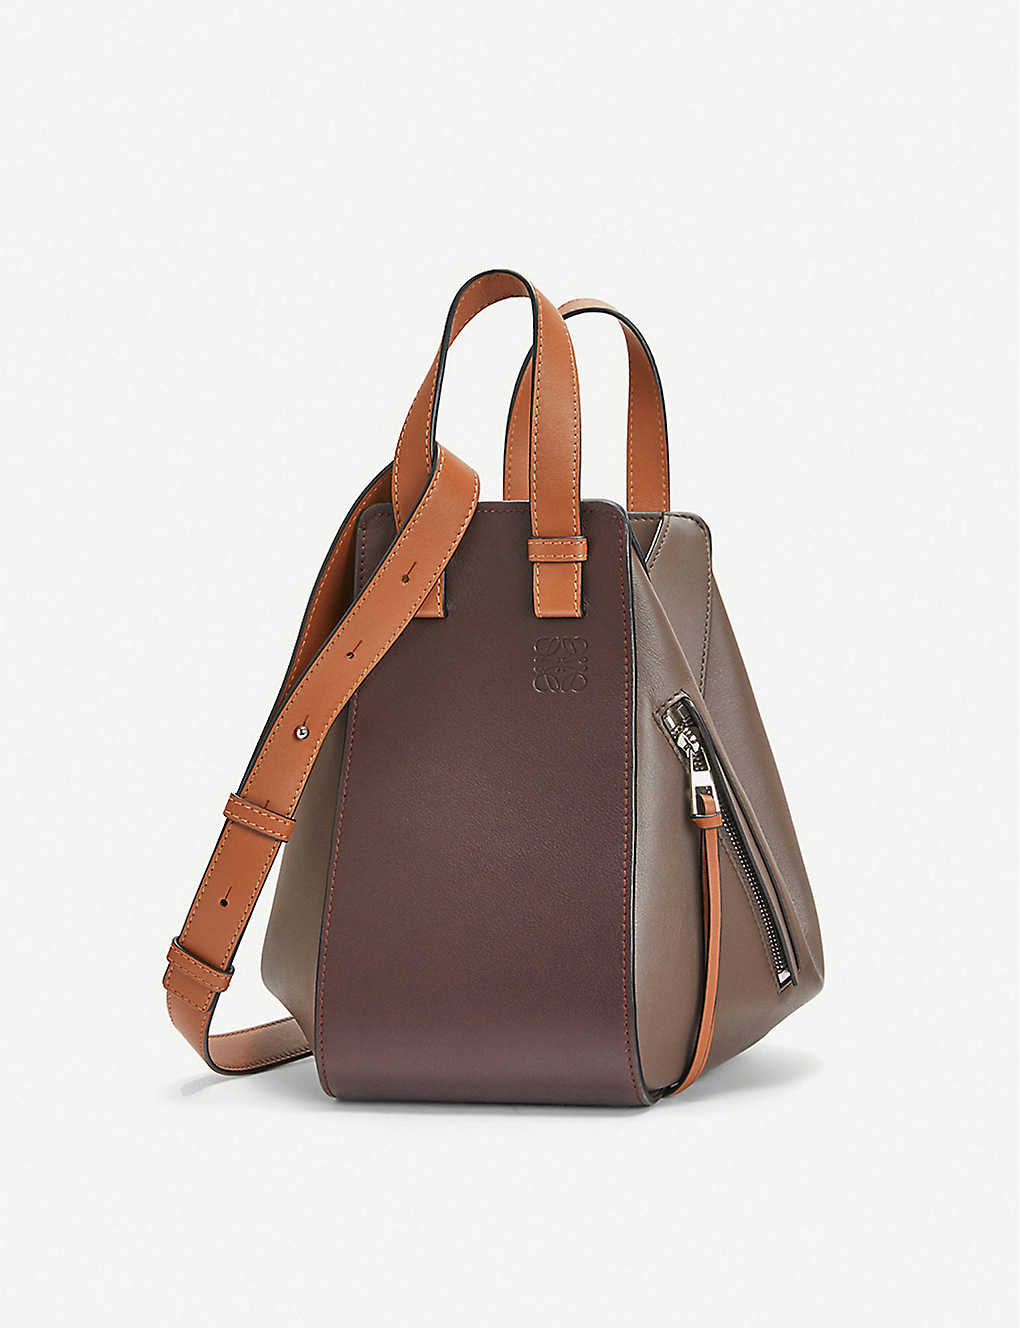 Hammock leather small shoulder bag - OXBLOODTAUPE